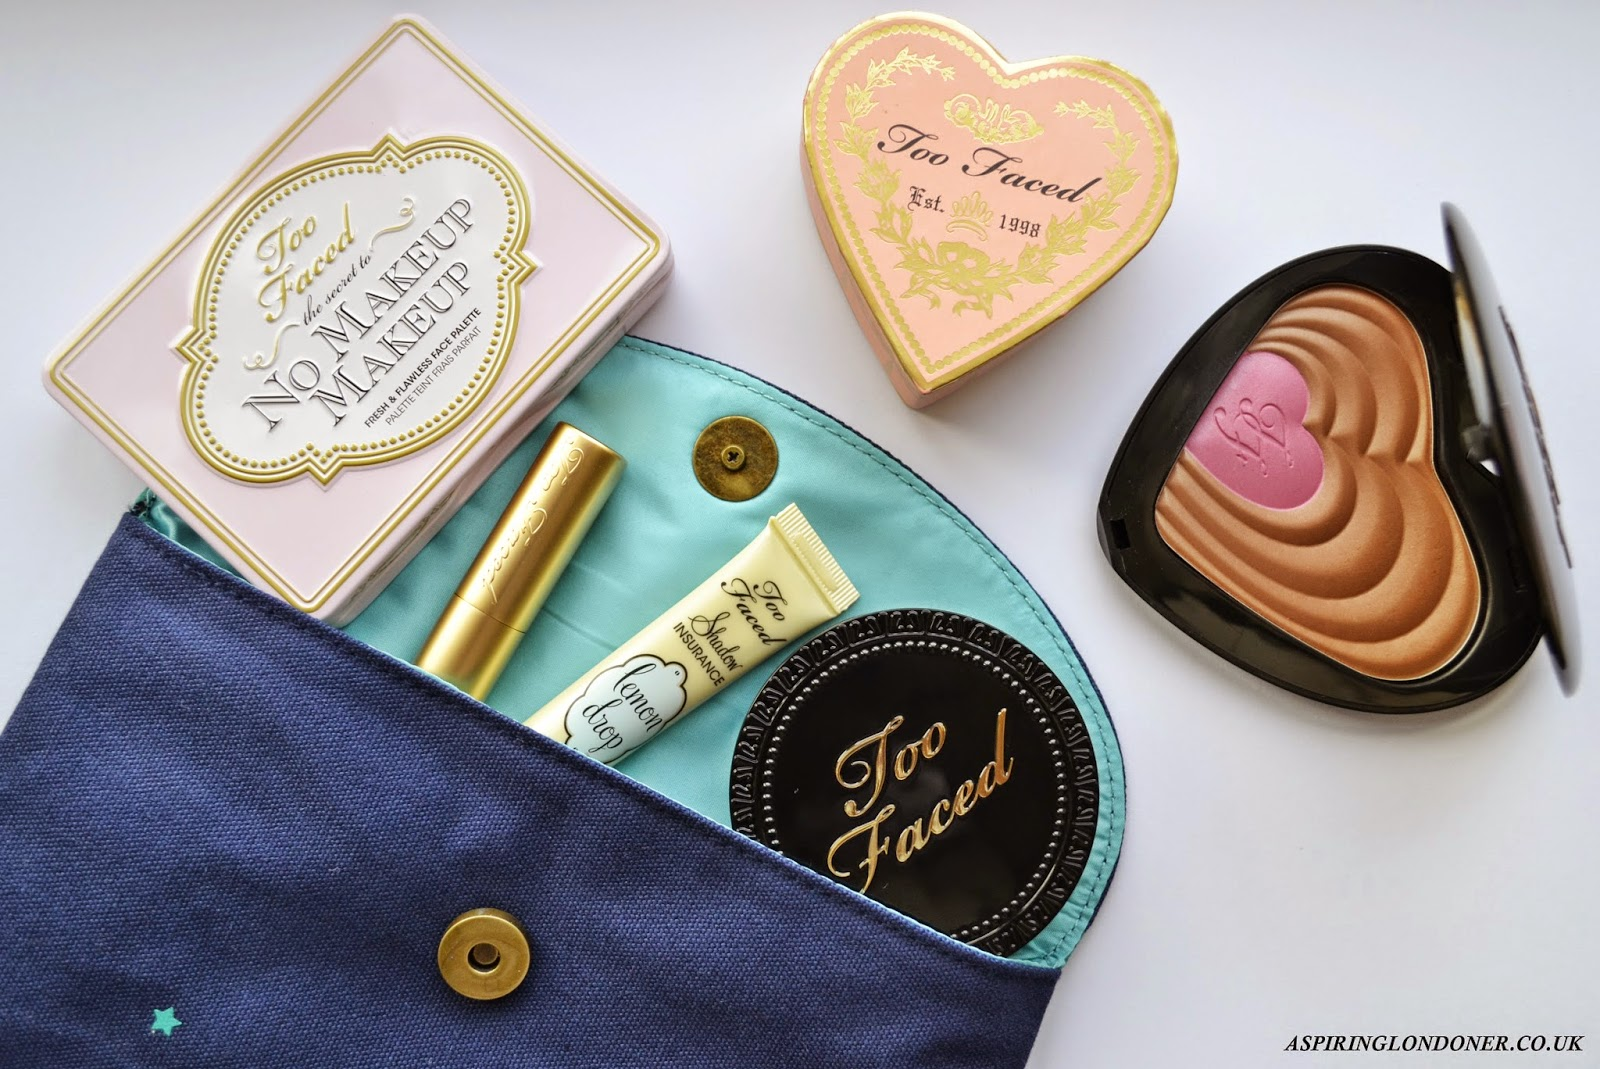 Best Of Too Faced Cosmetics Makeup Review - Aspiring Londoner